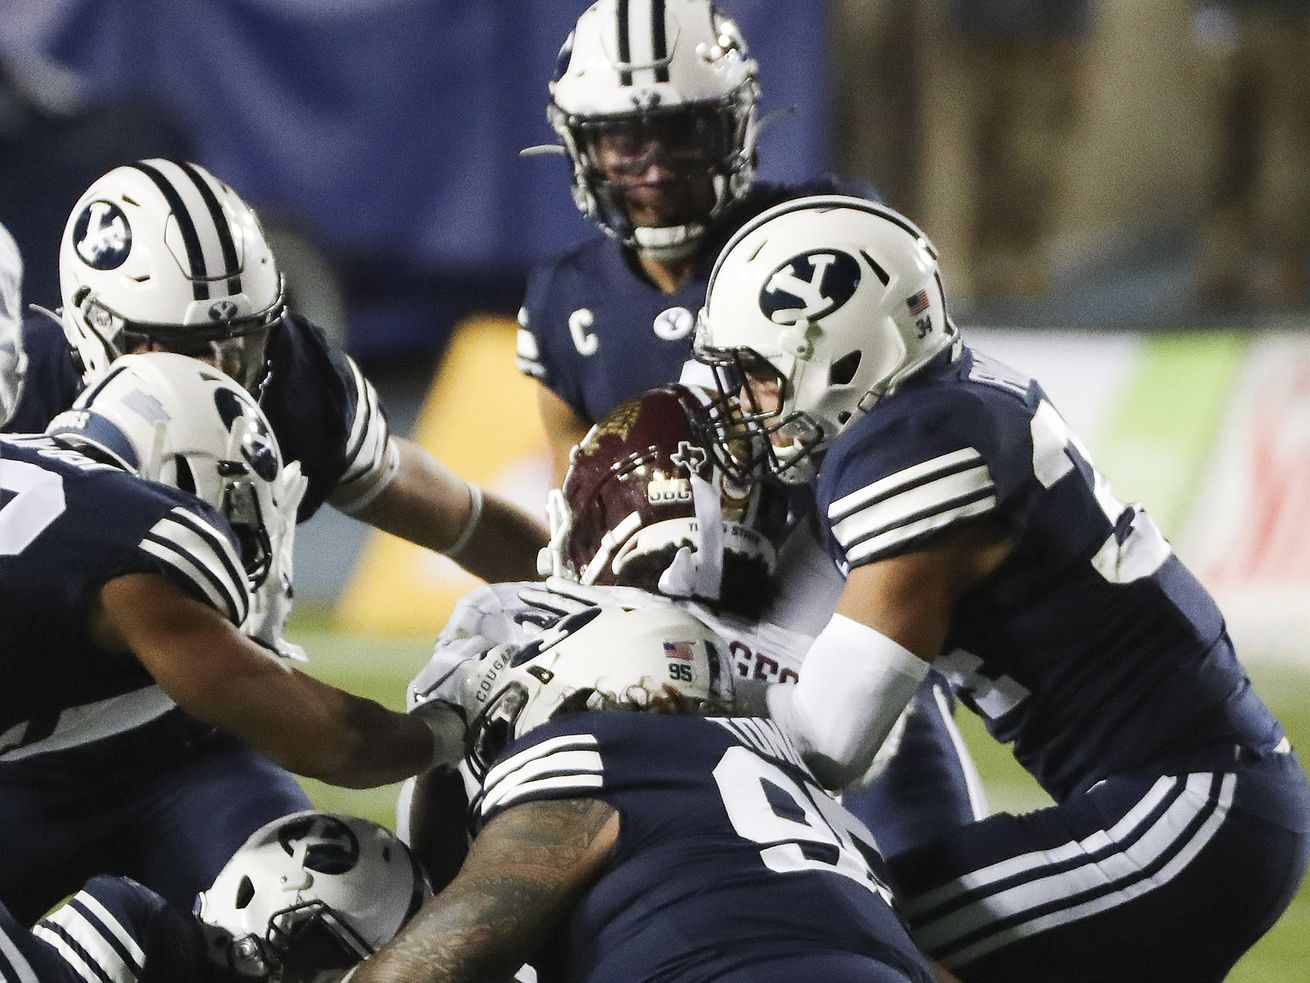 Adjustments made: How BYU shut down Texas State after a shaky start